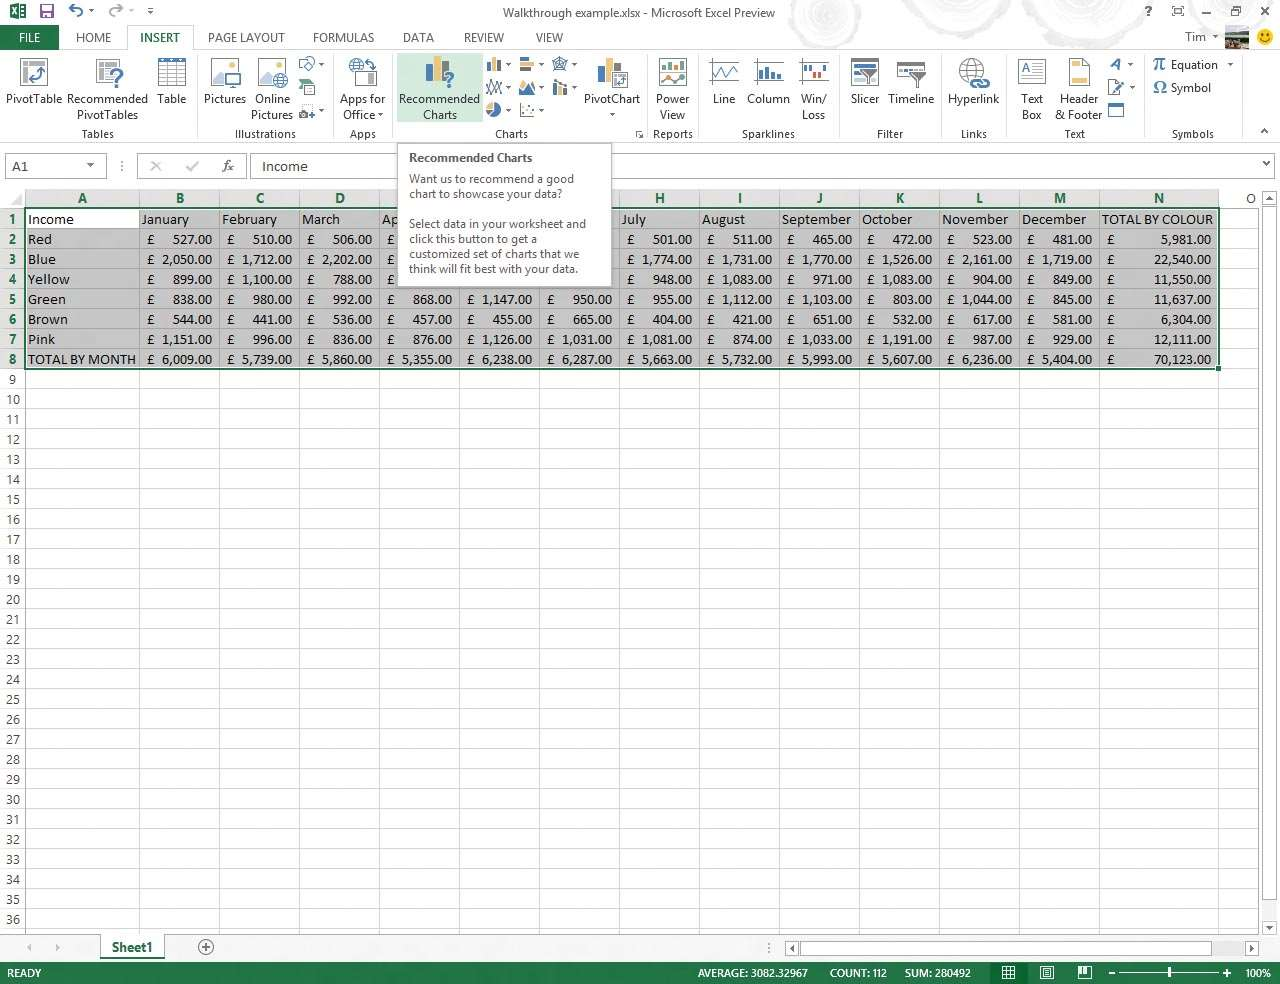 1 Excel 2007 Introduced Excellent Charting Tools, But Excel 2013 Makes It  Easier To Use